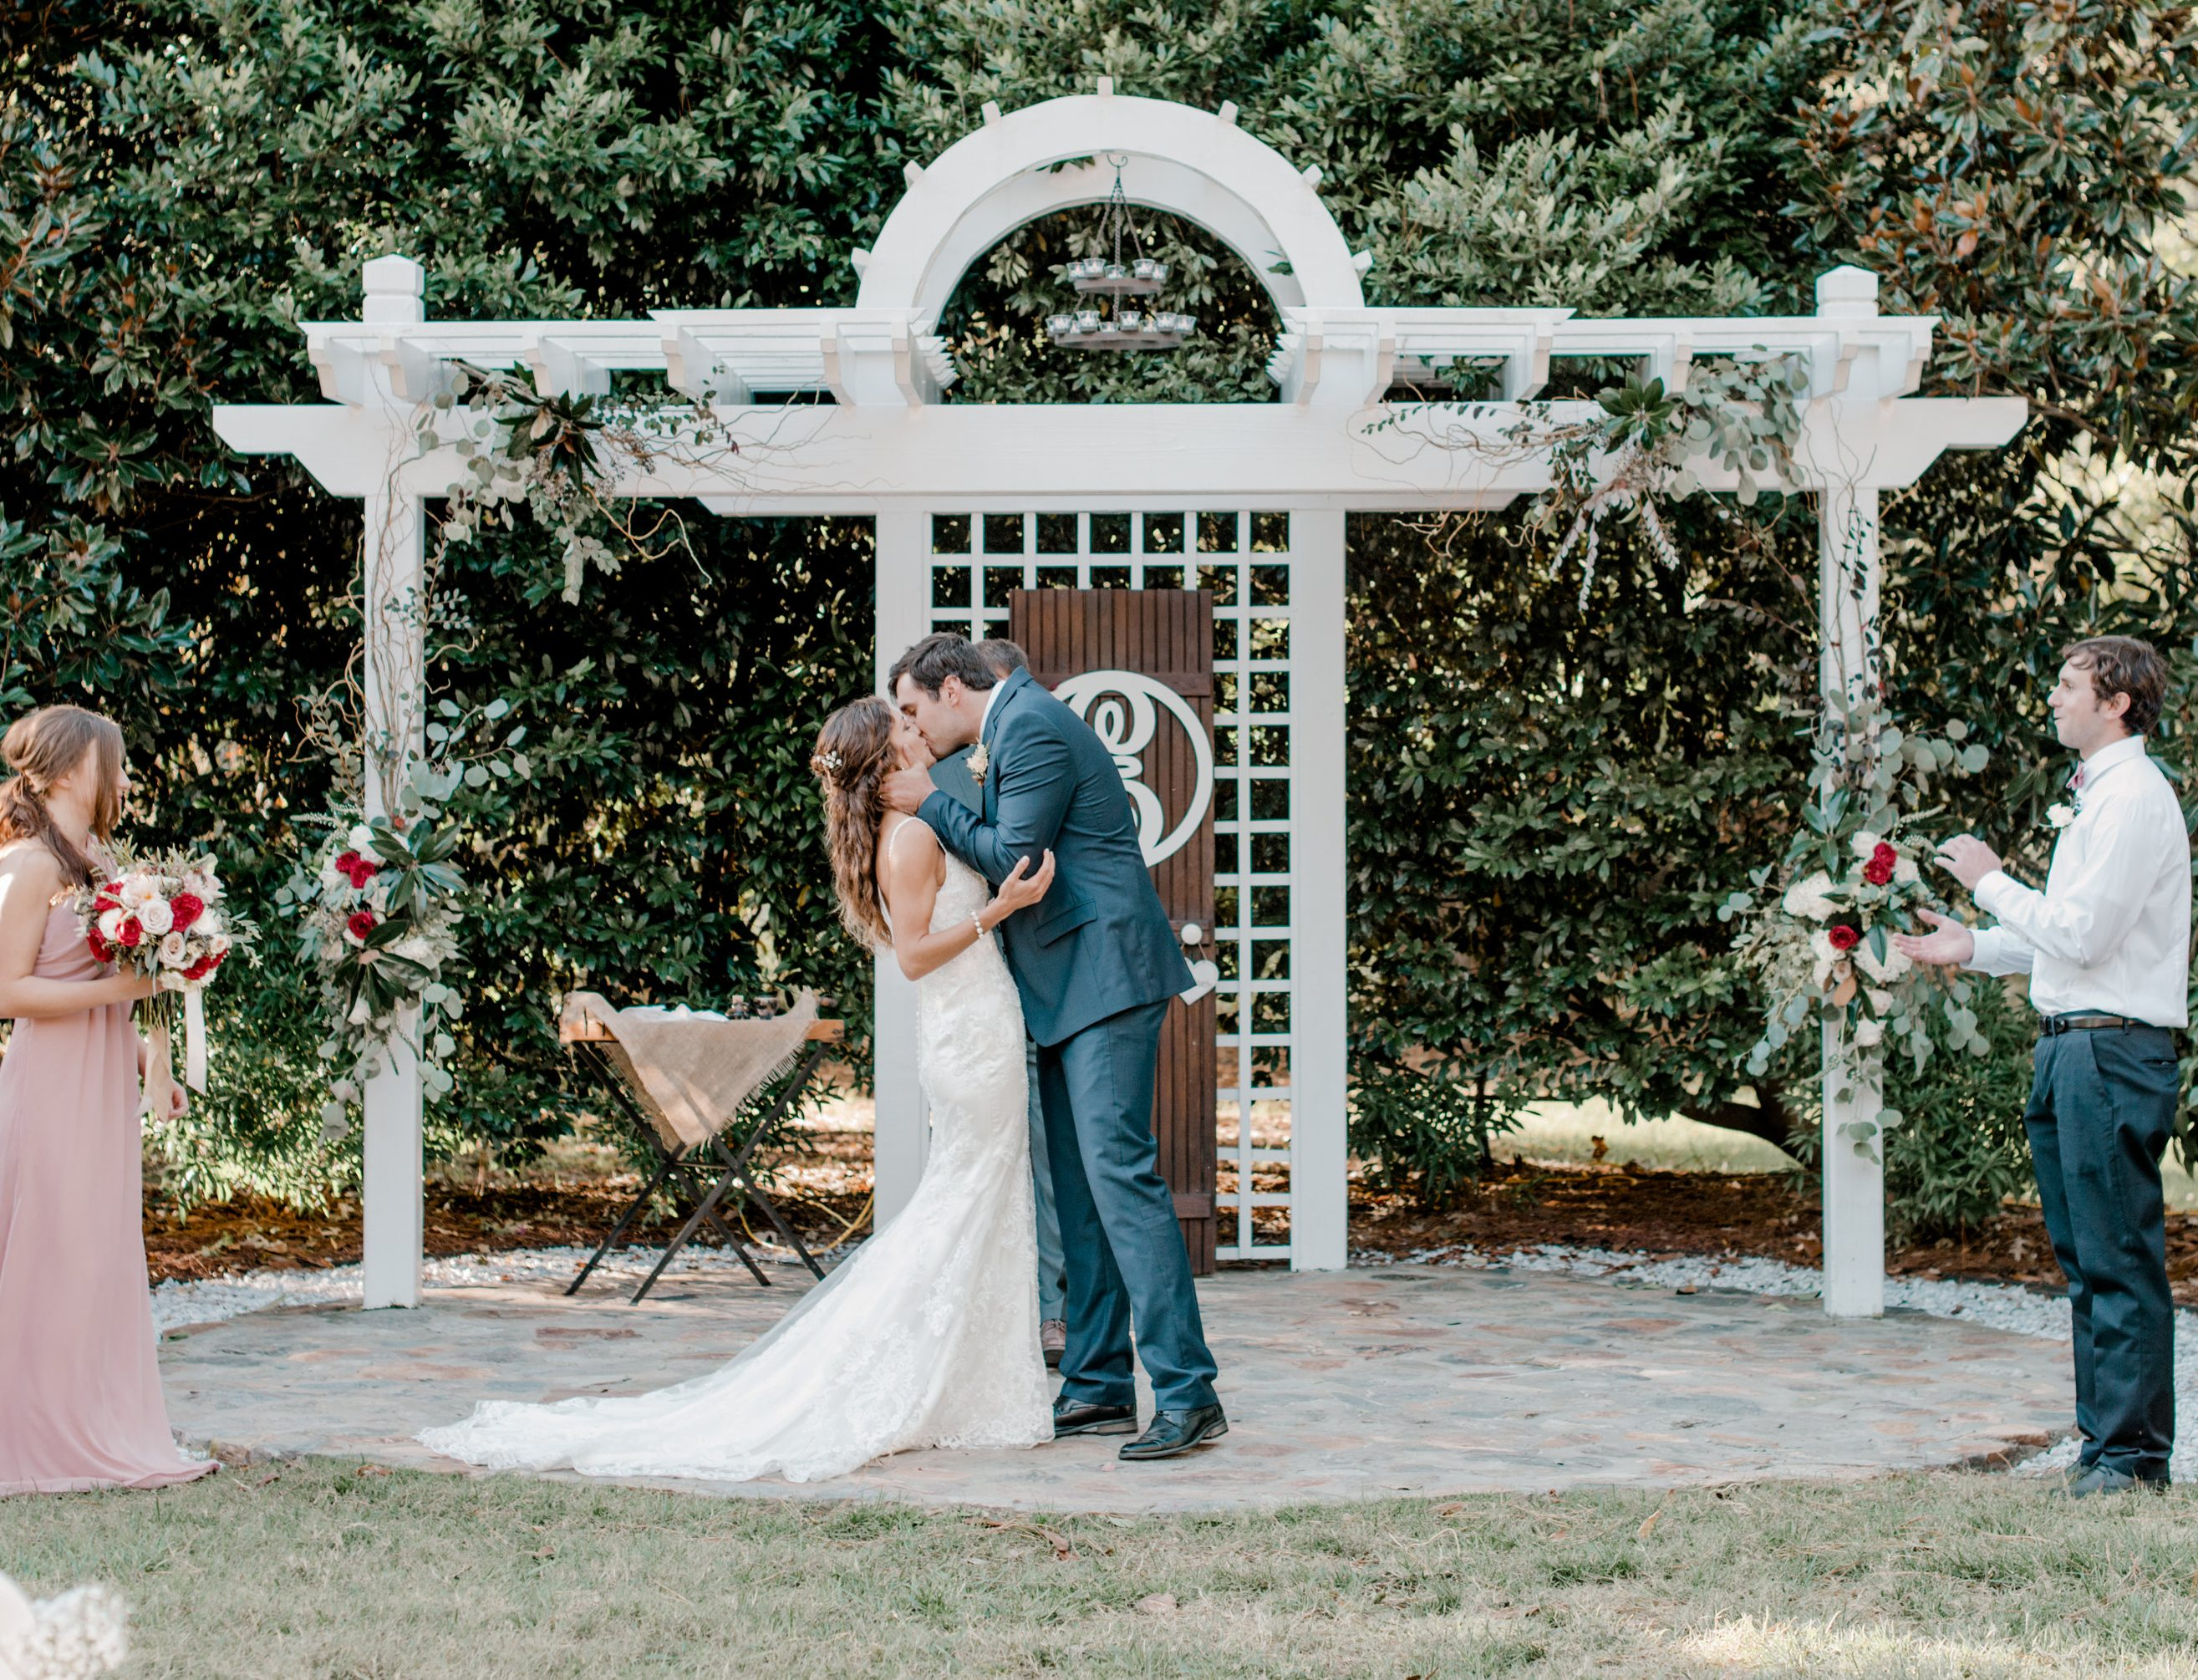 Country-Villa-The-Altar-Bride-Groom-Kissing